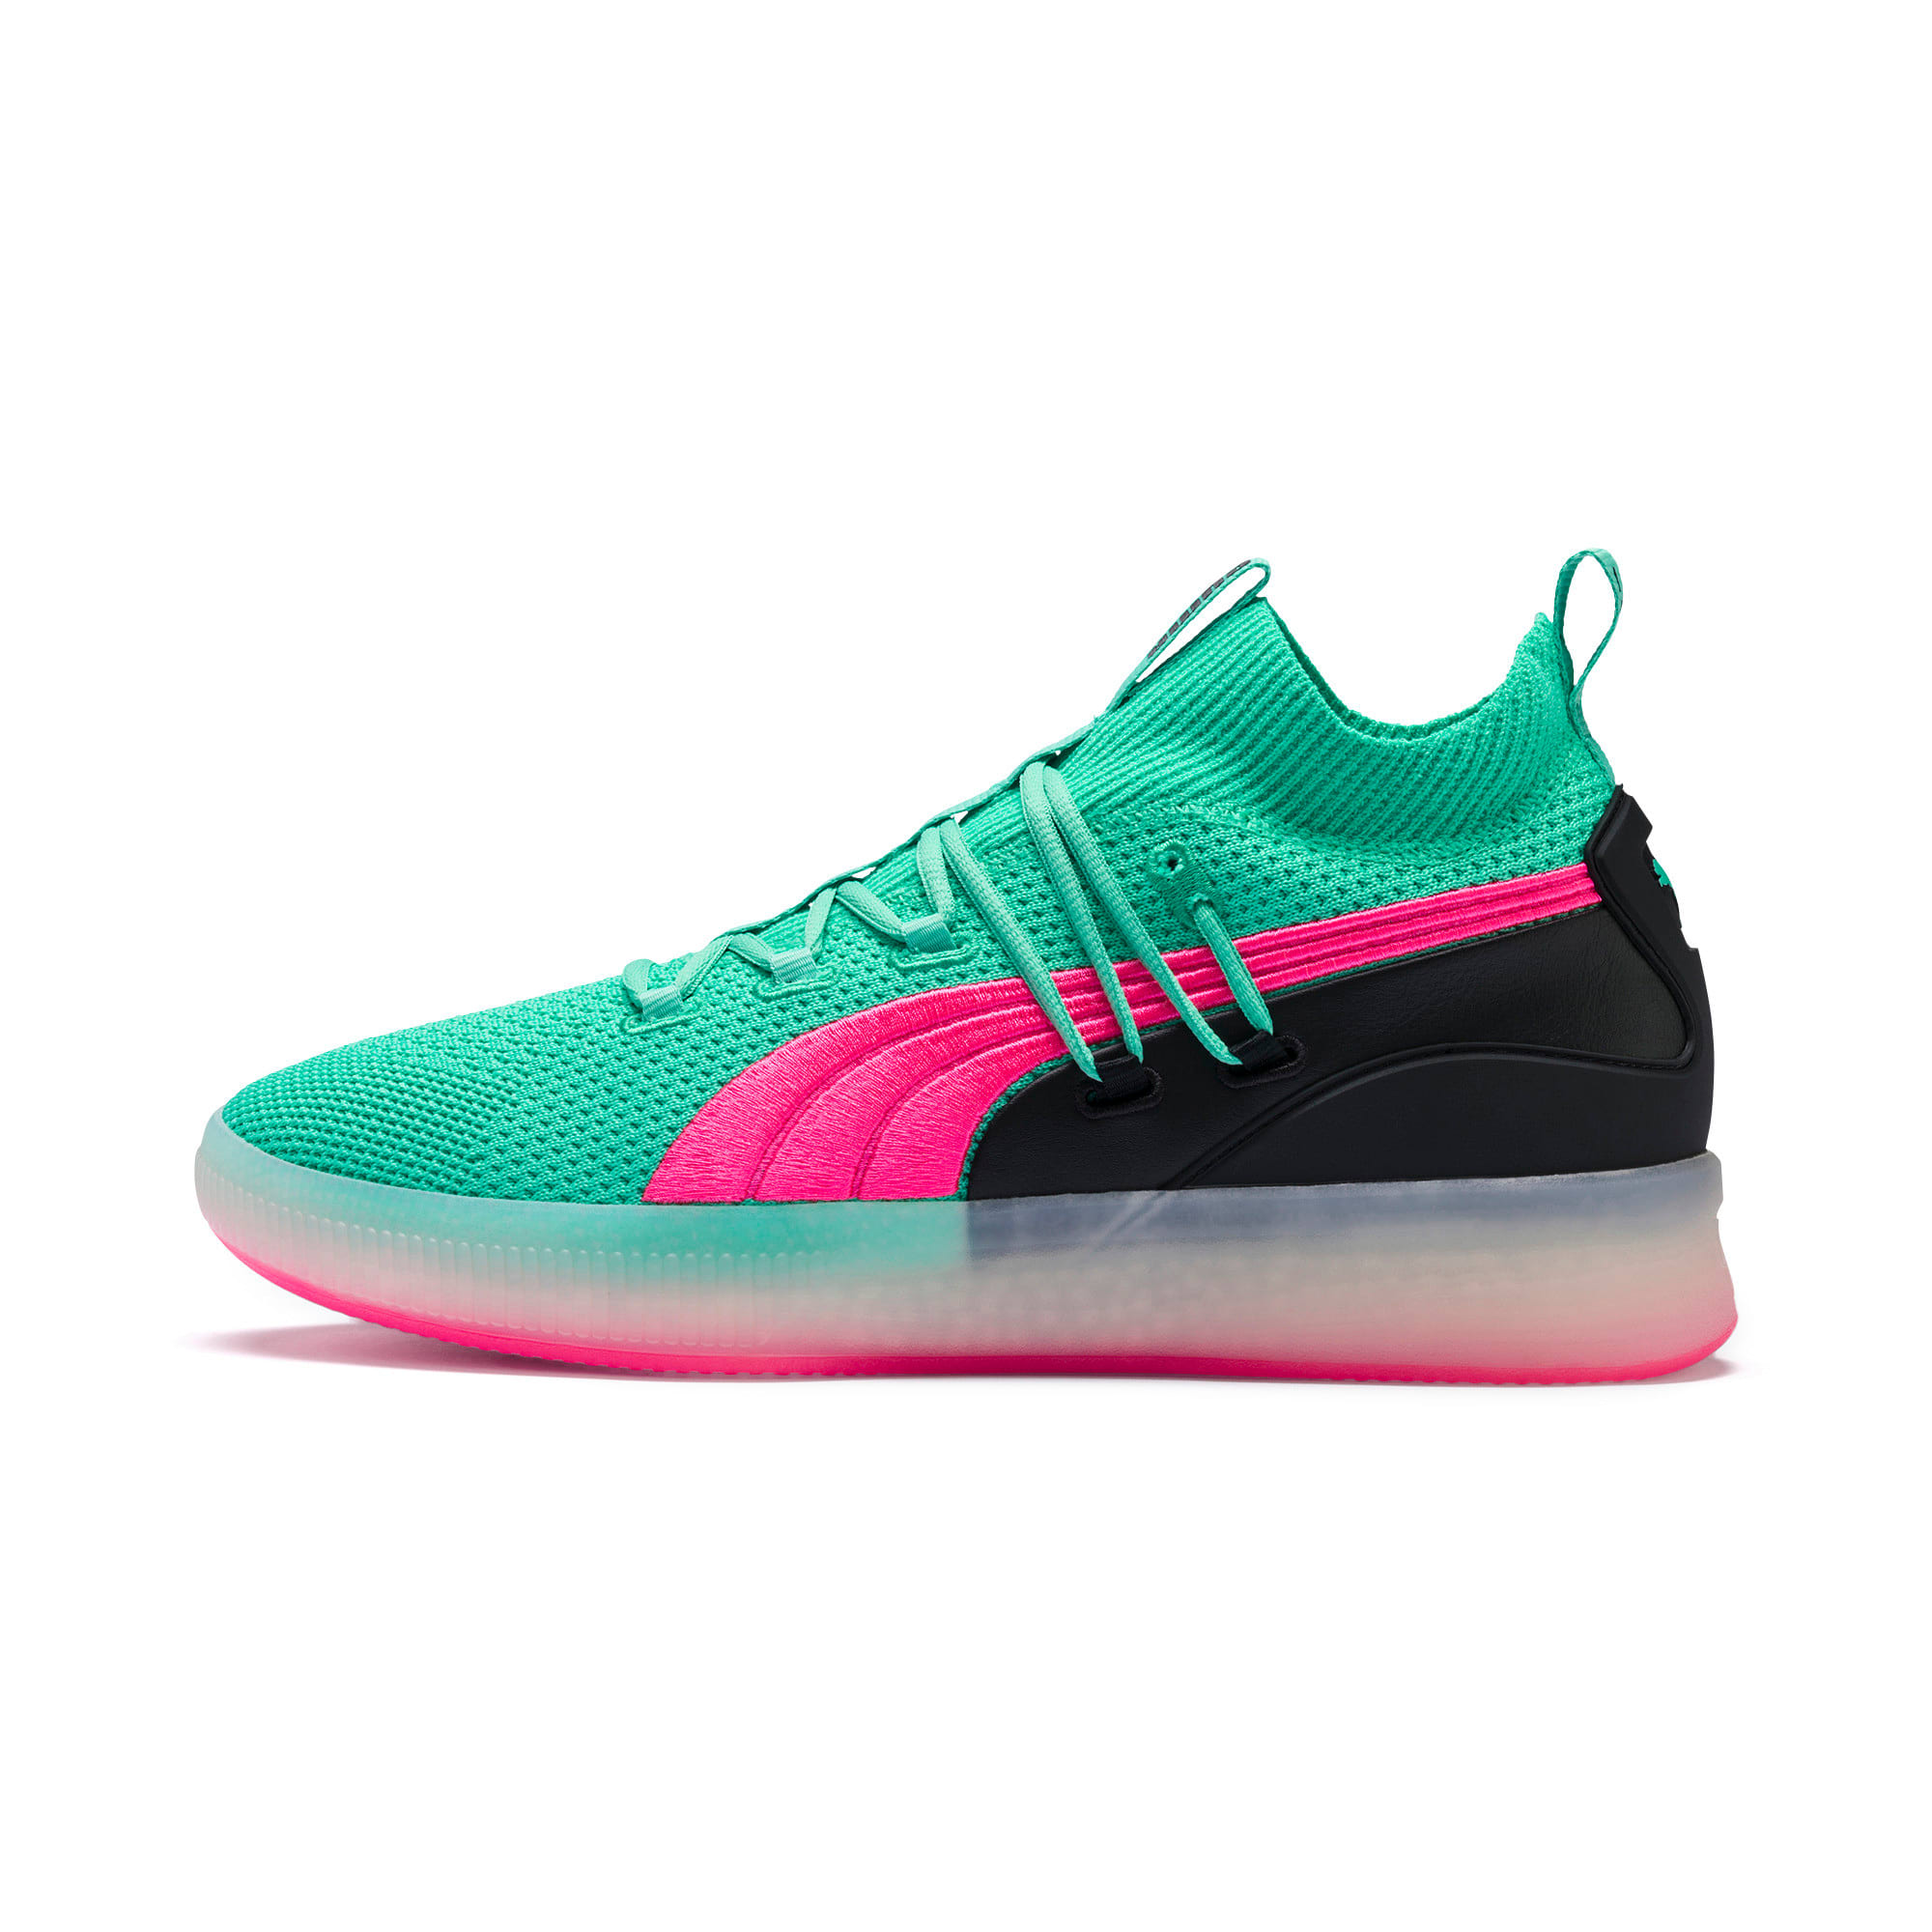 on sale 712f1 85b8d Clyde Court Basketball Shoes